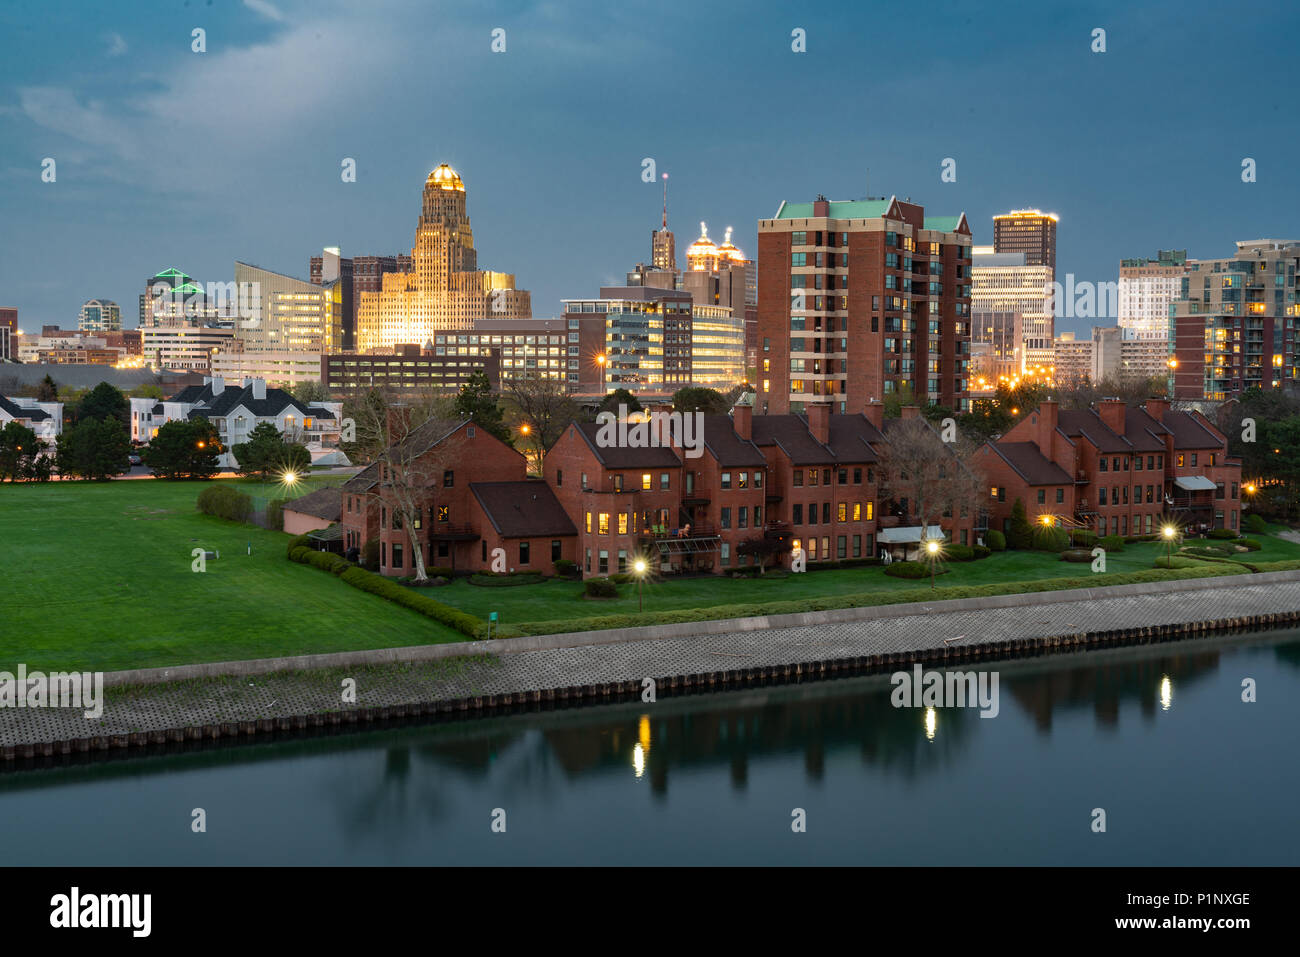 buffalo ny new york upstate stock photos buffalo ny new york upstate stock images alamy. Black Bedroom Furniture Sets. Home Design Ideas